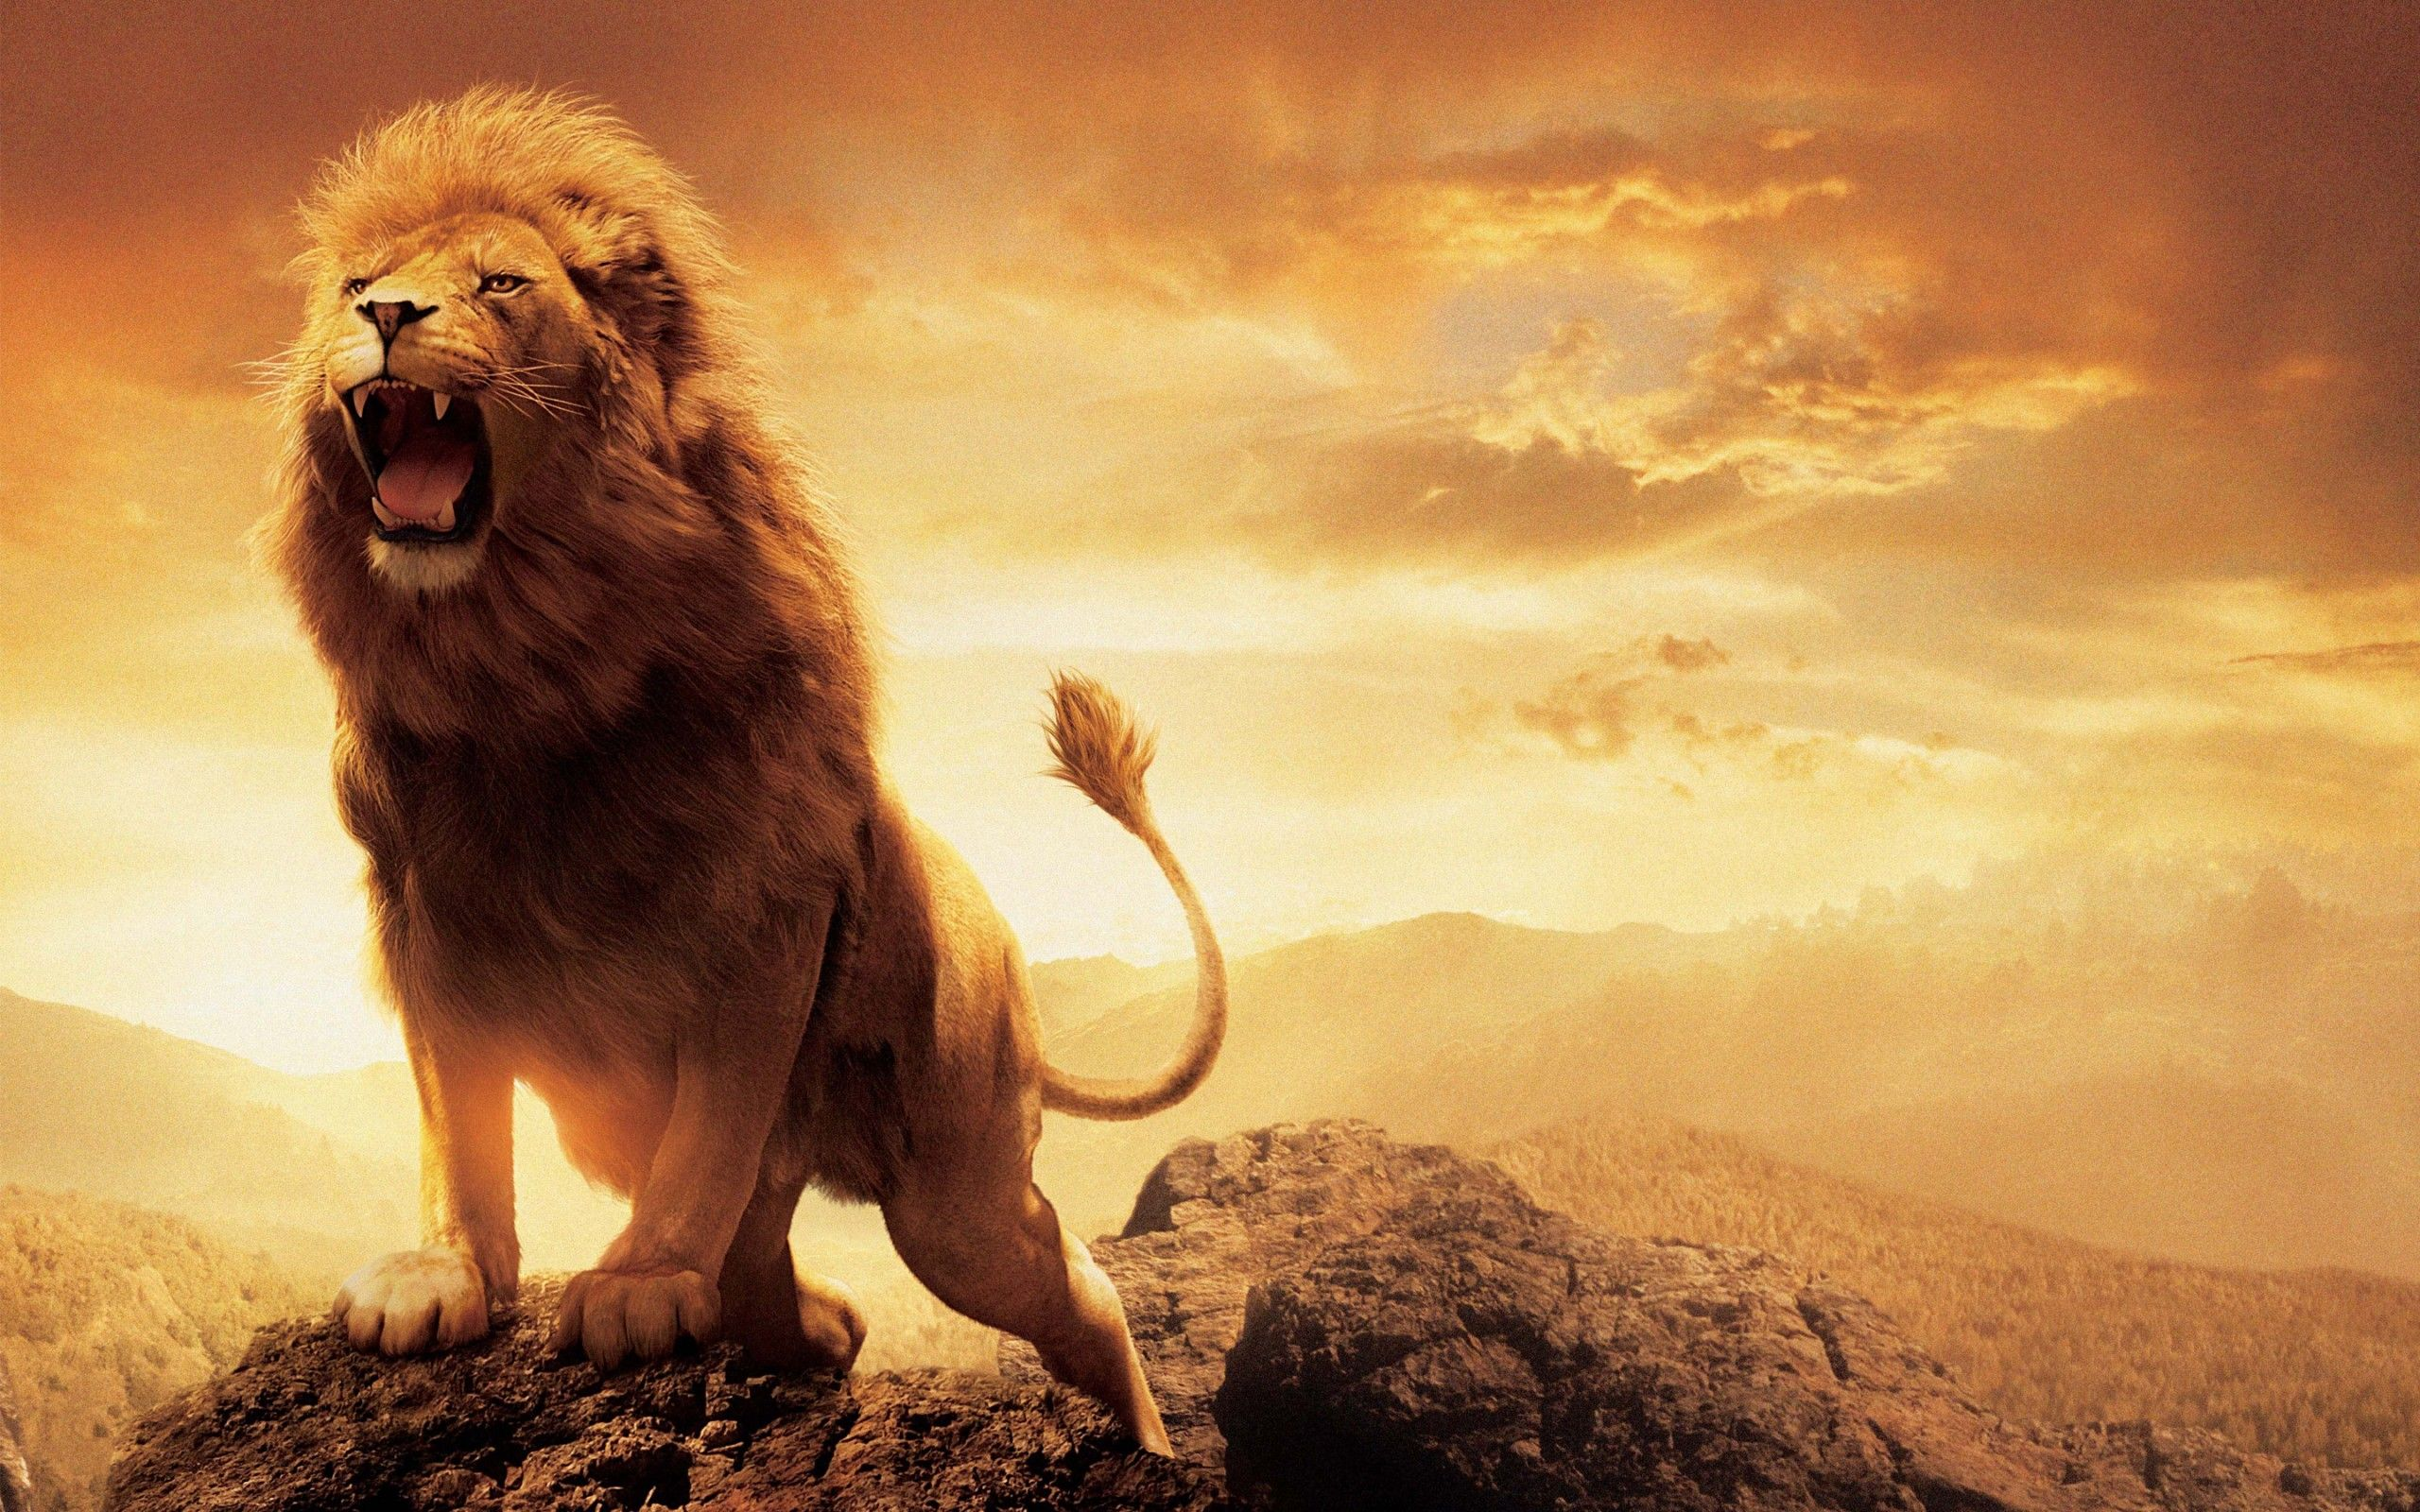 lion images hd download